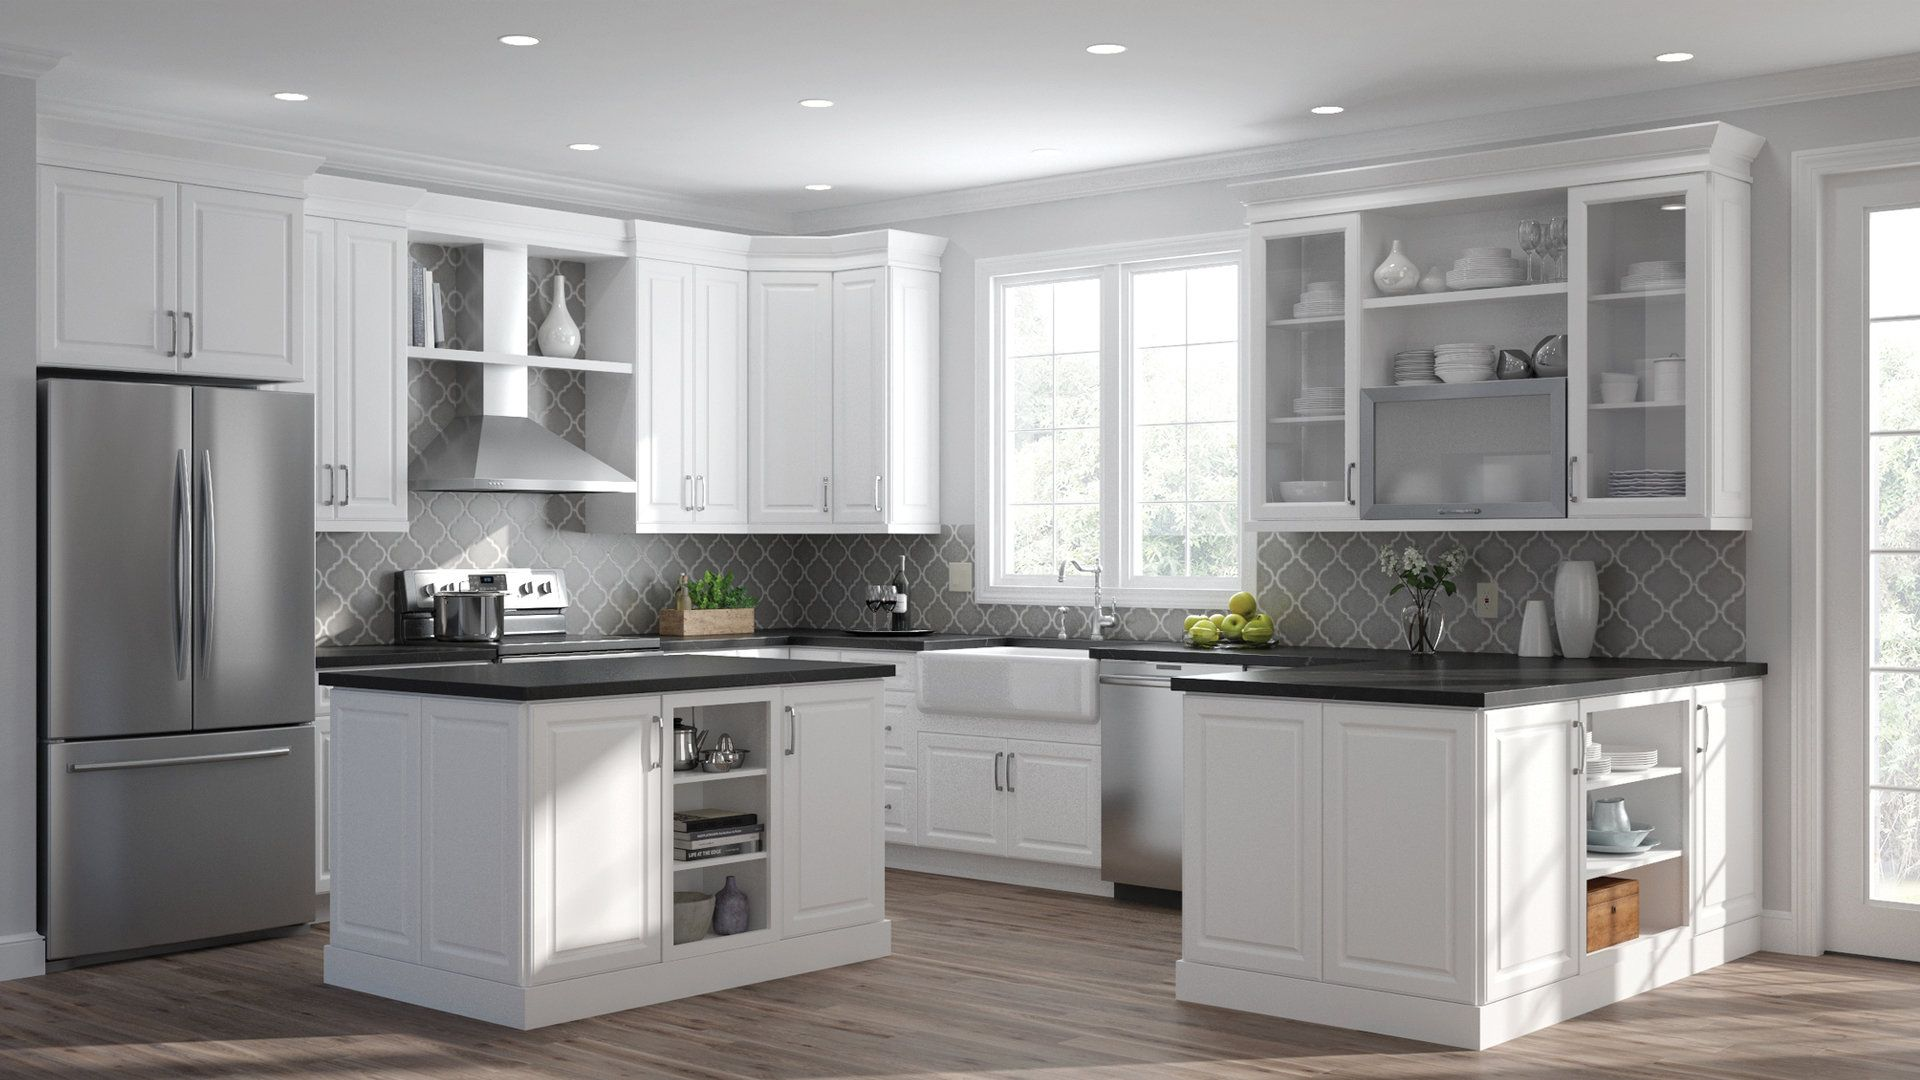 Shop Our Kitchen Cabinets Department To Customize Your Elgin Wall